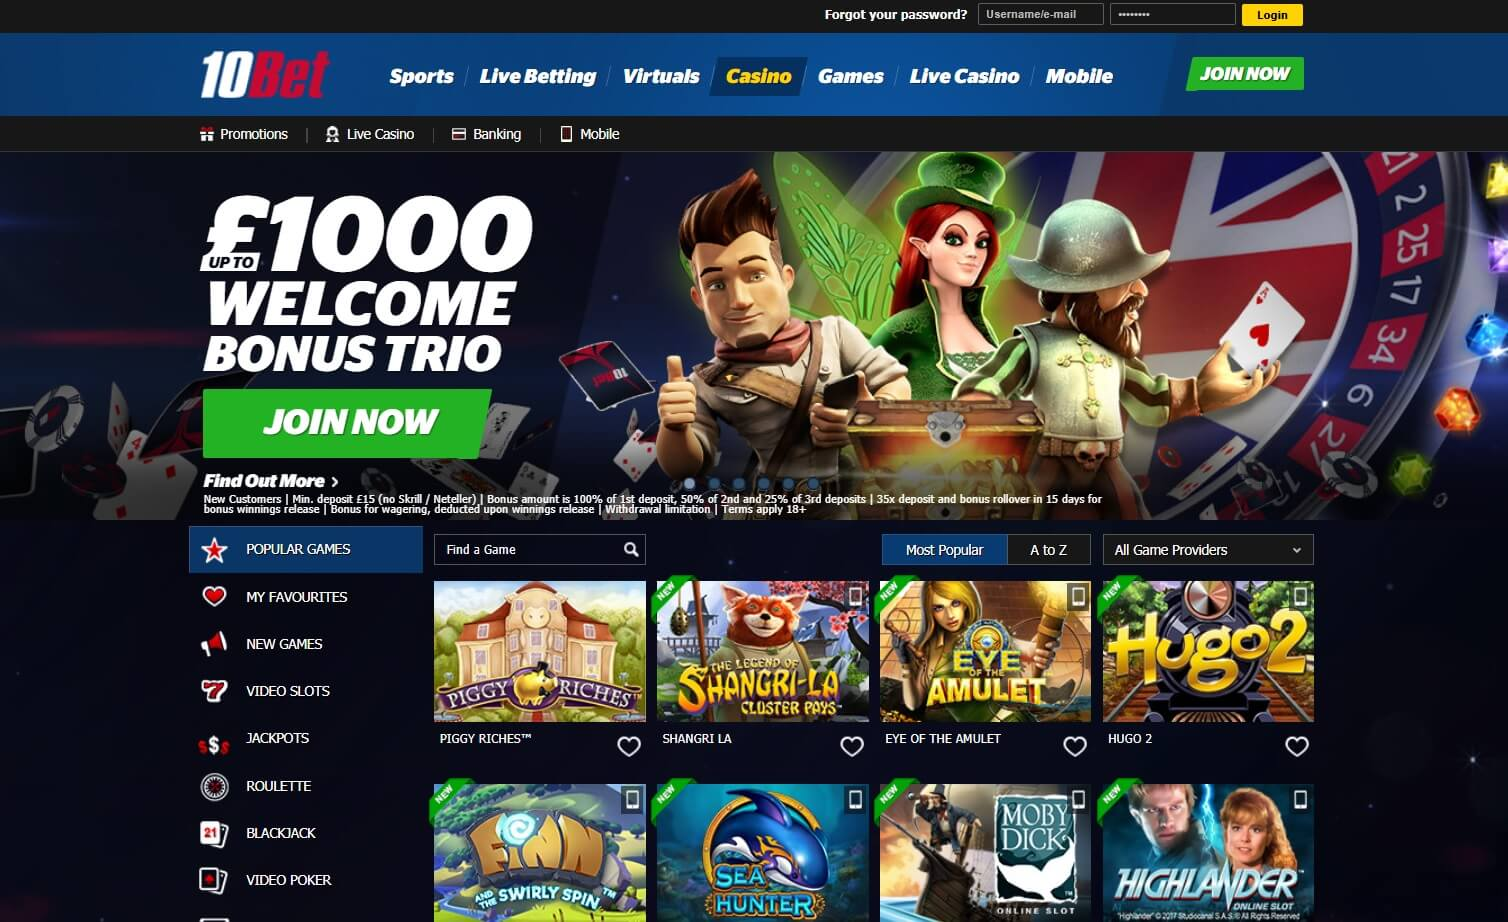 10bet casino games and slots